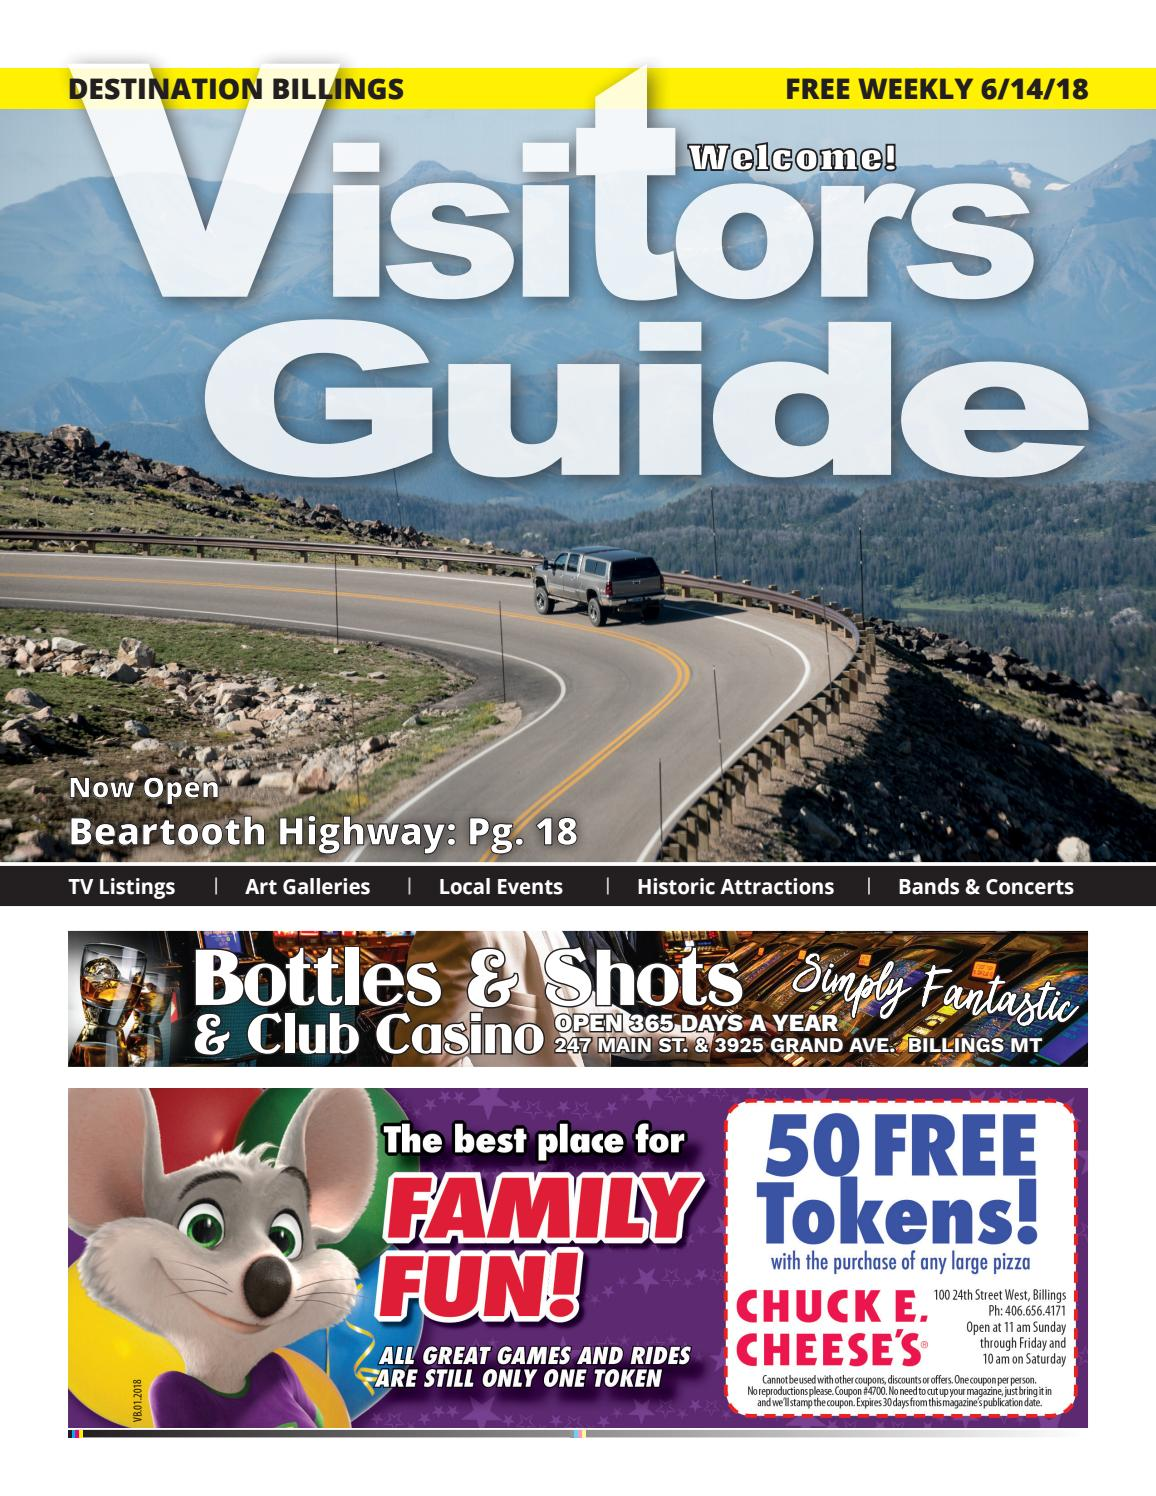 c1b0e5c33b Welcome! Visitors Guide 18-06-14 by Welcome! Visitors Guide - issuu